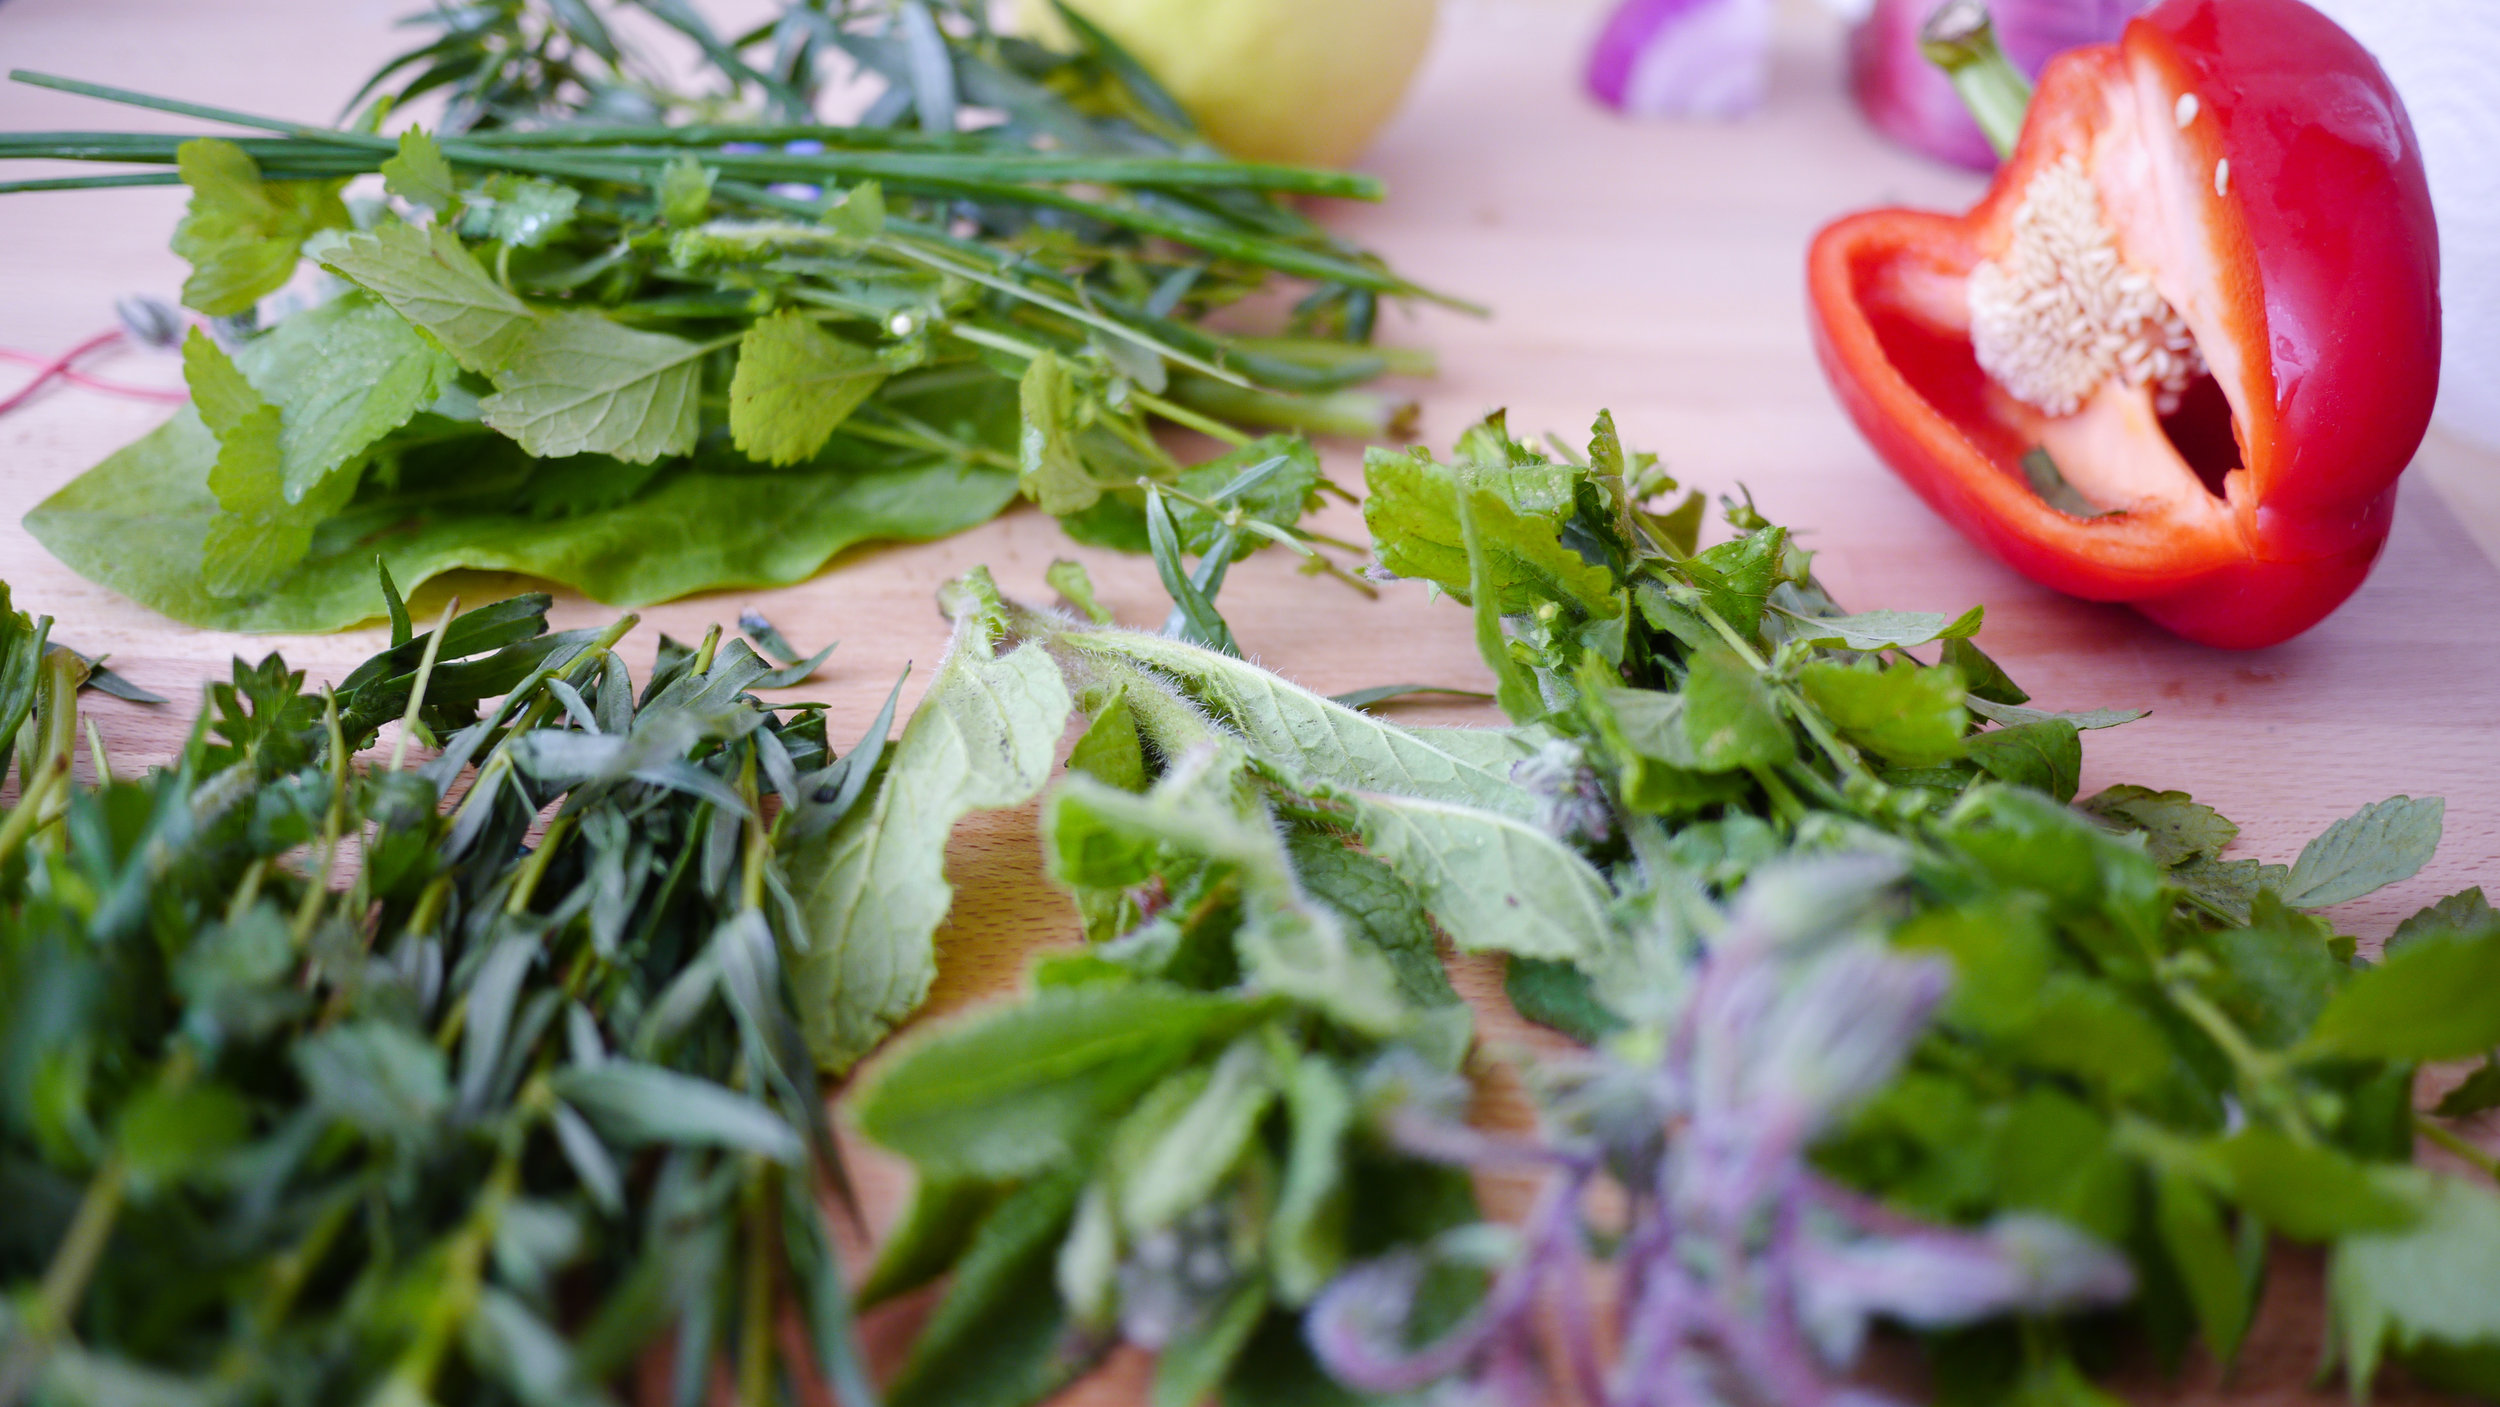 Wild Foods in your kitchen - with Butter Petty